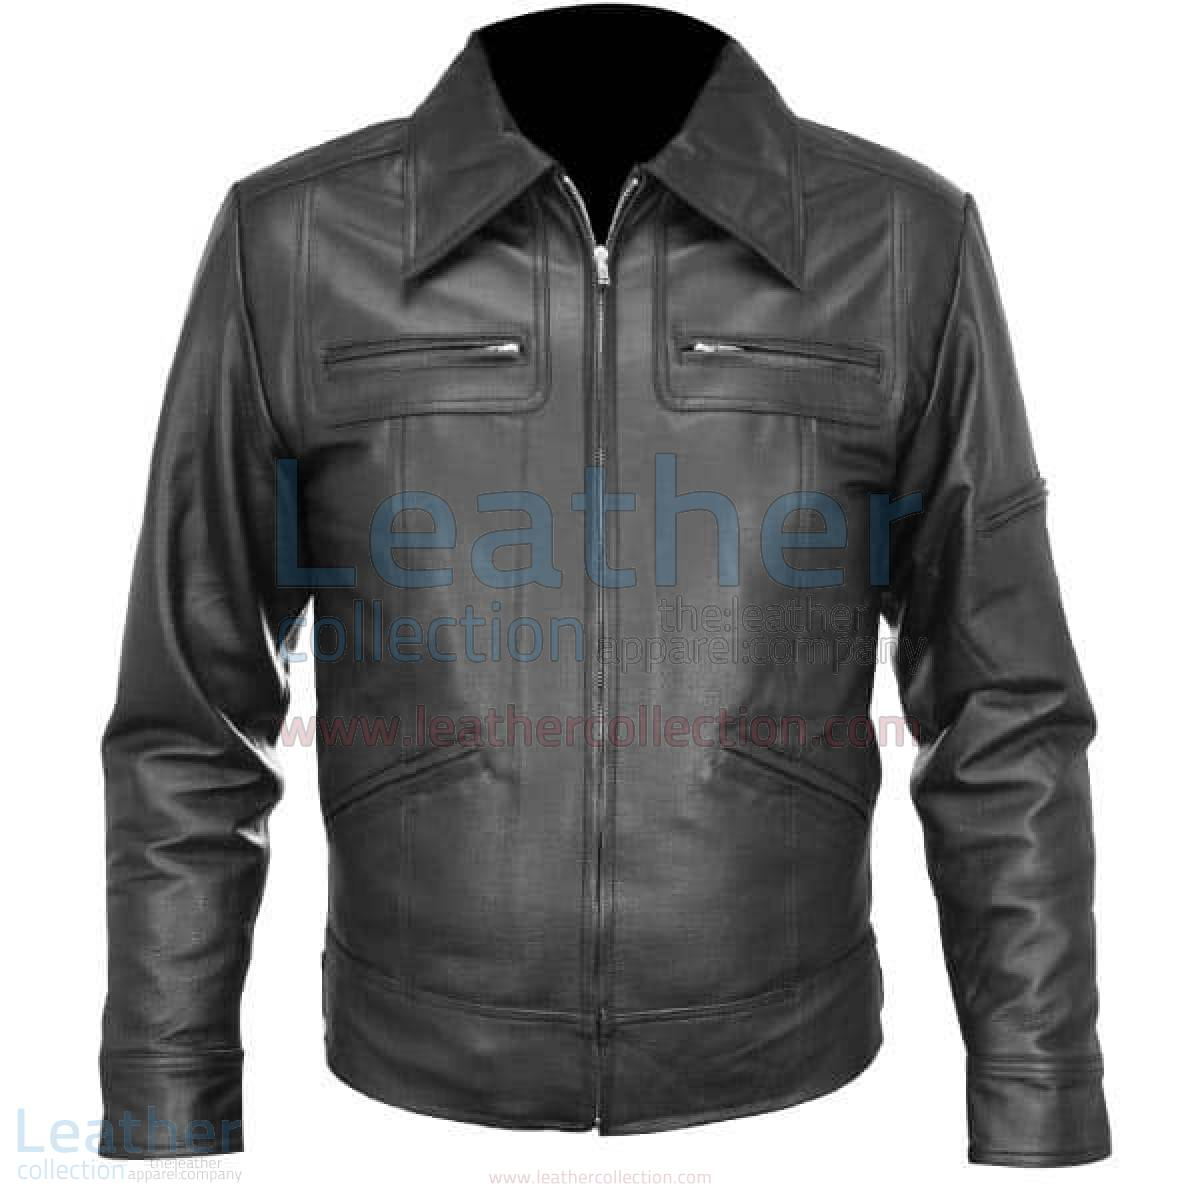 leather jacket black shirt